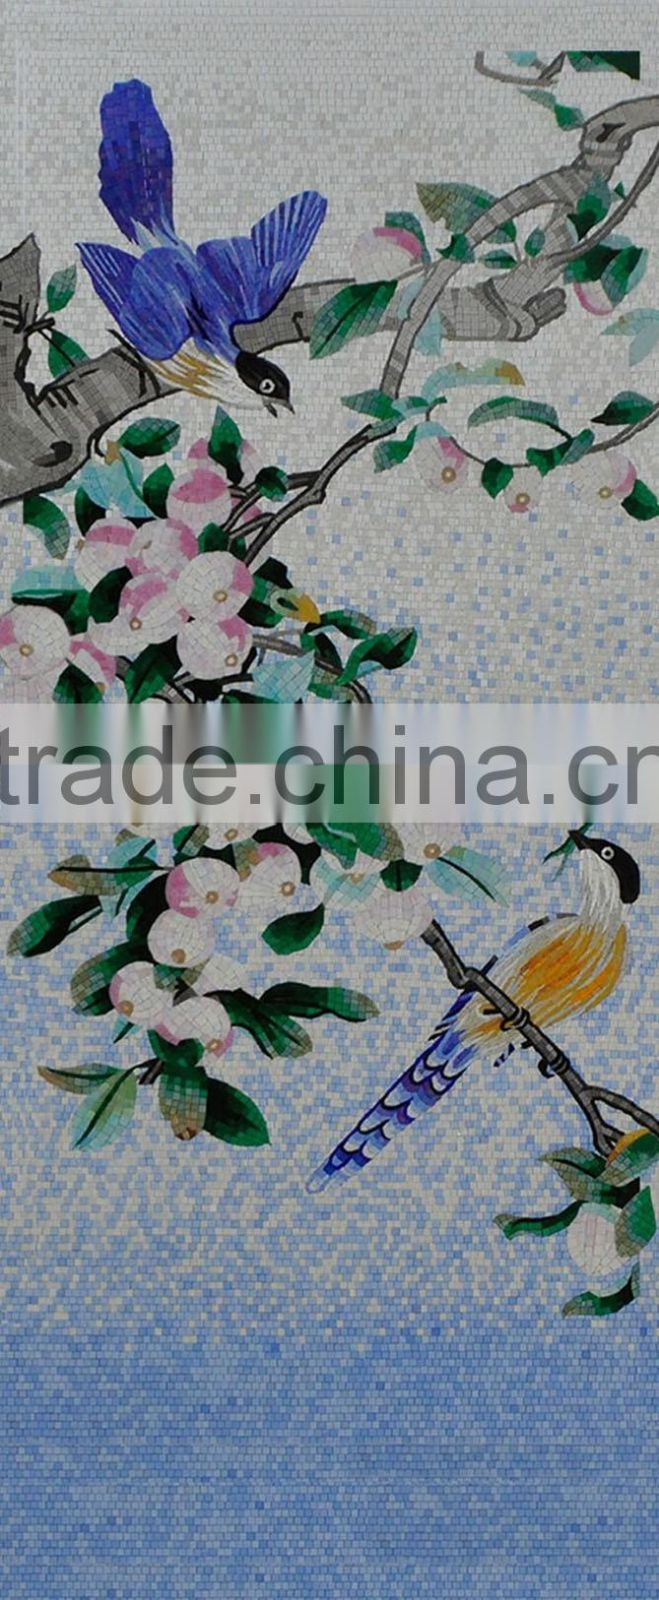 IMARK Traditional Chinese Painting Bird Pattern Mosaic Mural/Glass Mosaic Mural Mosaic Art for House Wall Decoration